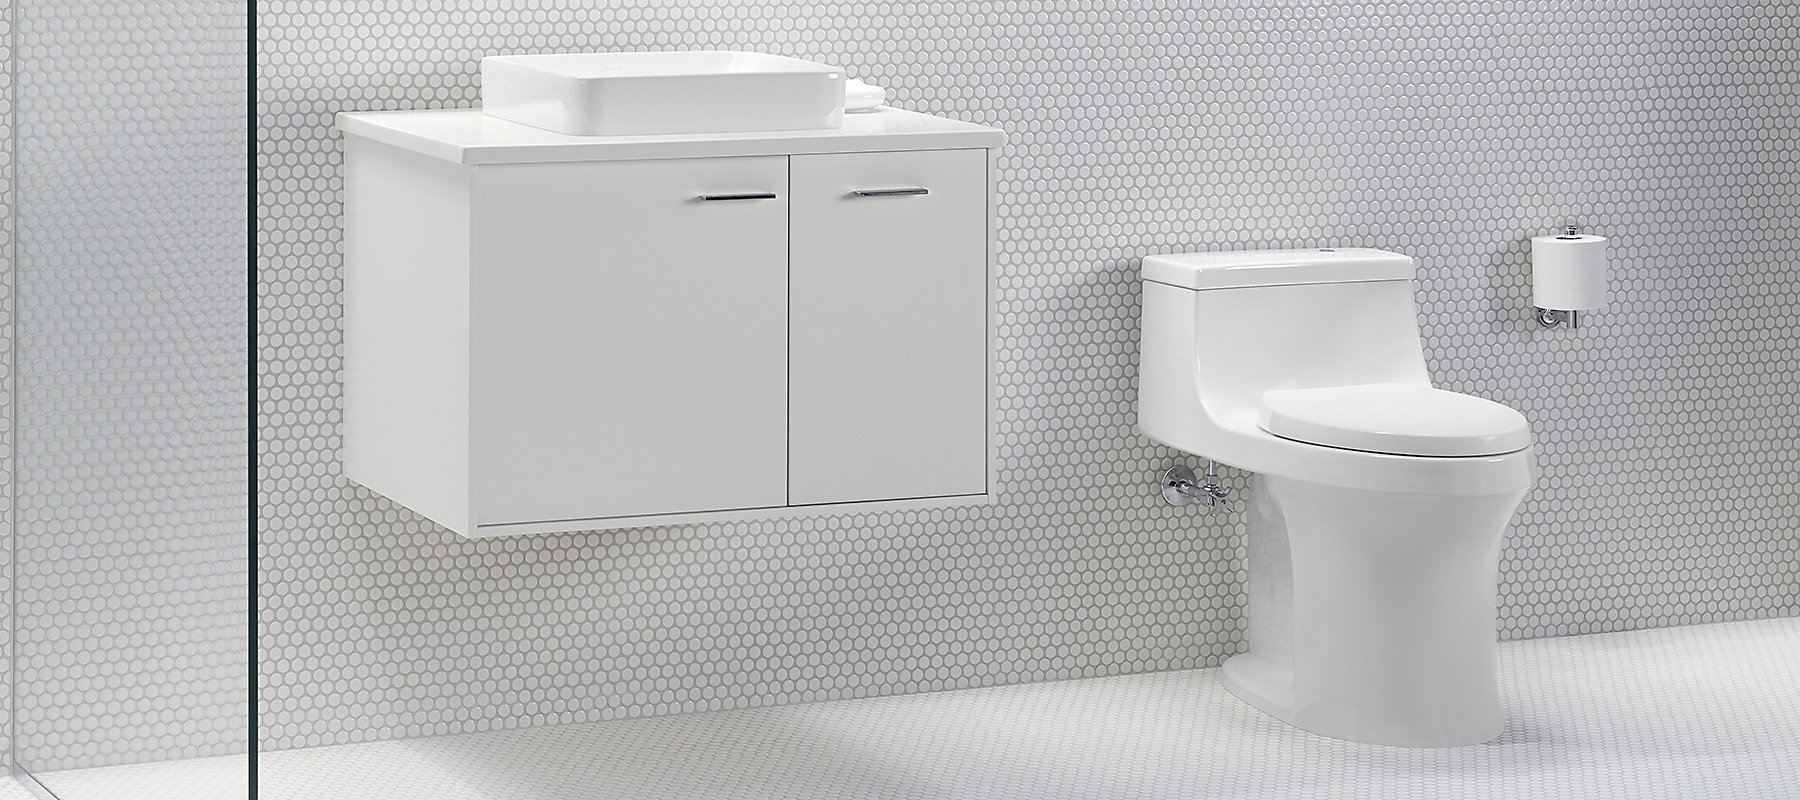 Bathroom kohler for Toilet design